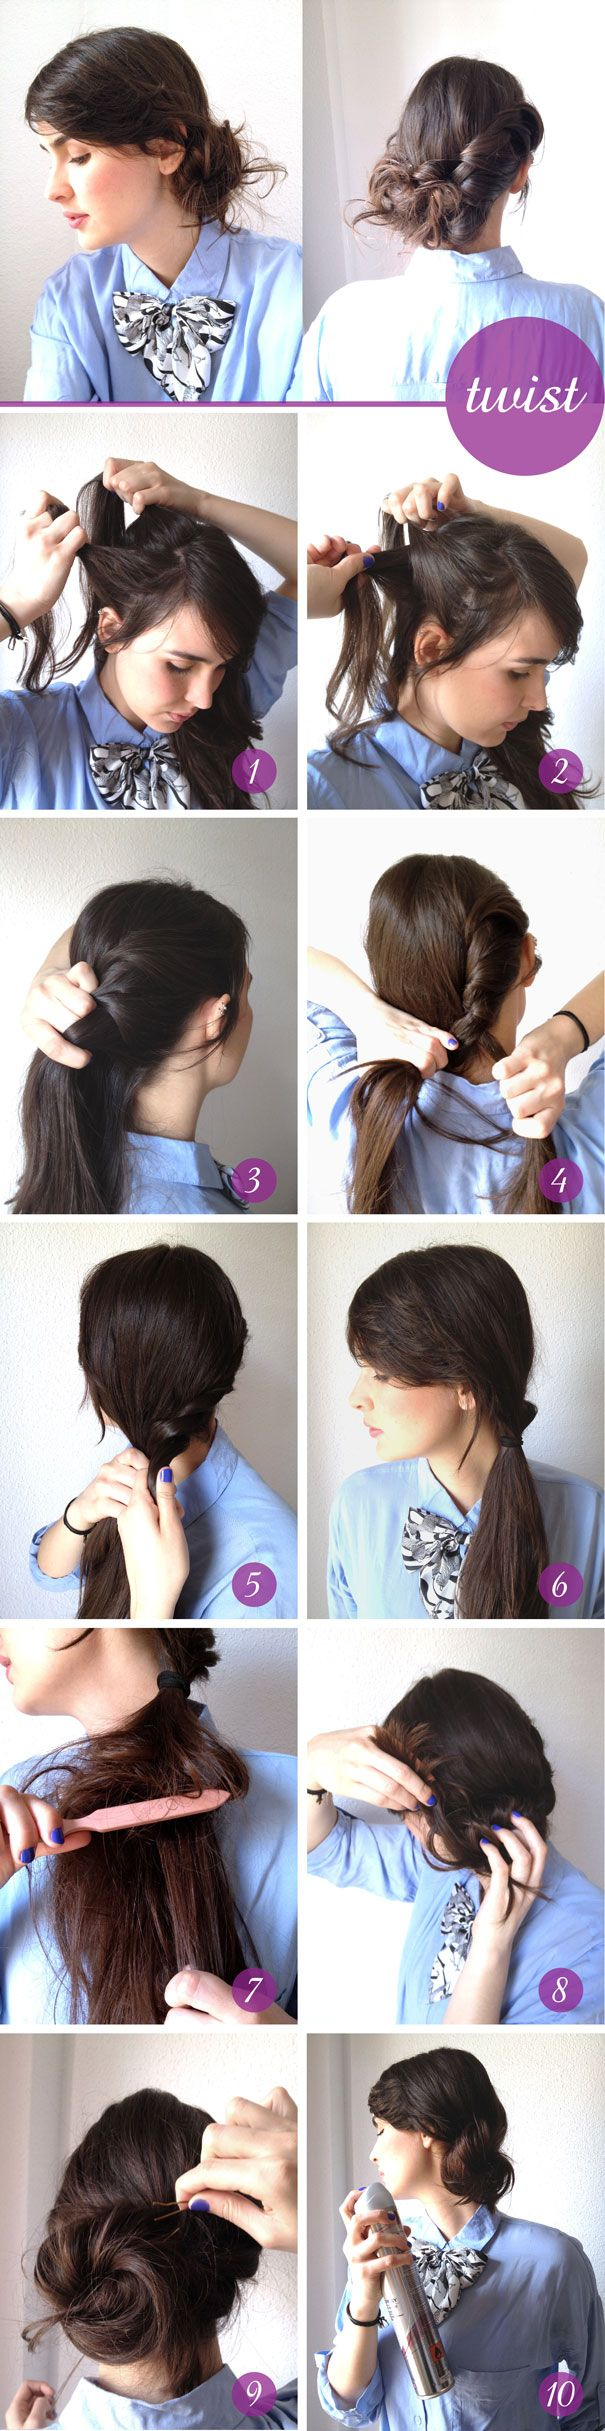 How To Get Summer S 27 Best Hairstyles Hair Styles Hair Beauty Long Hair Styles